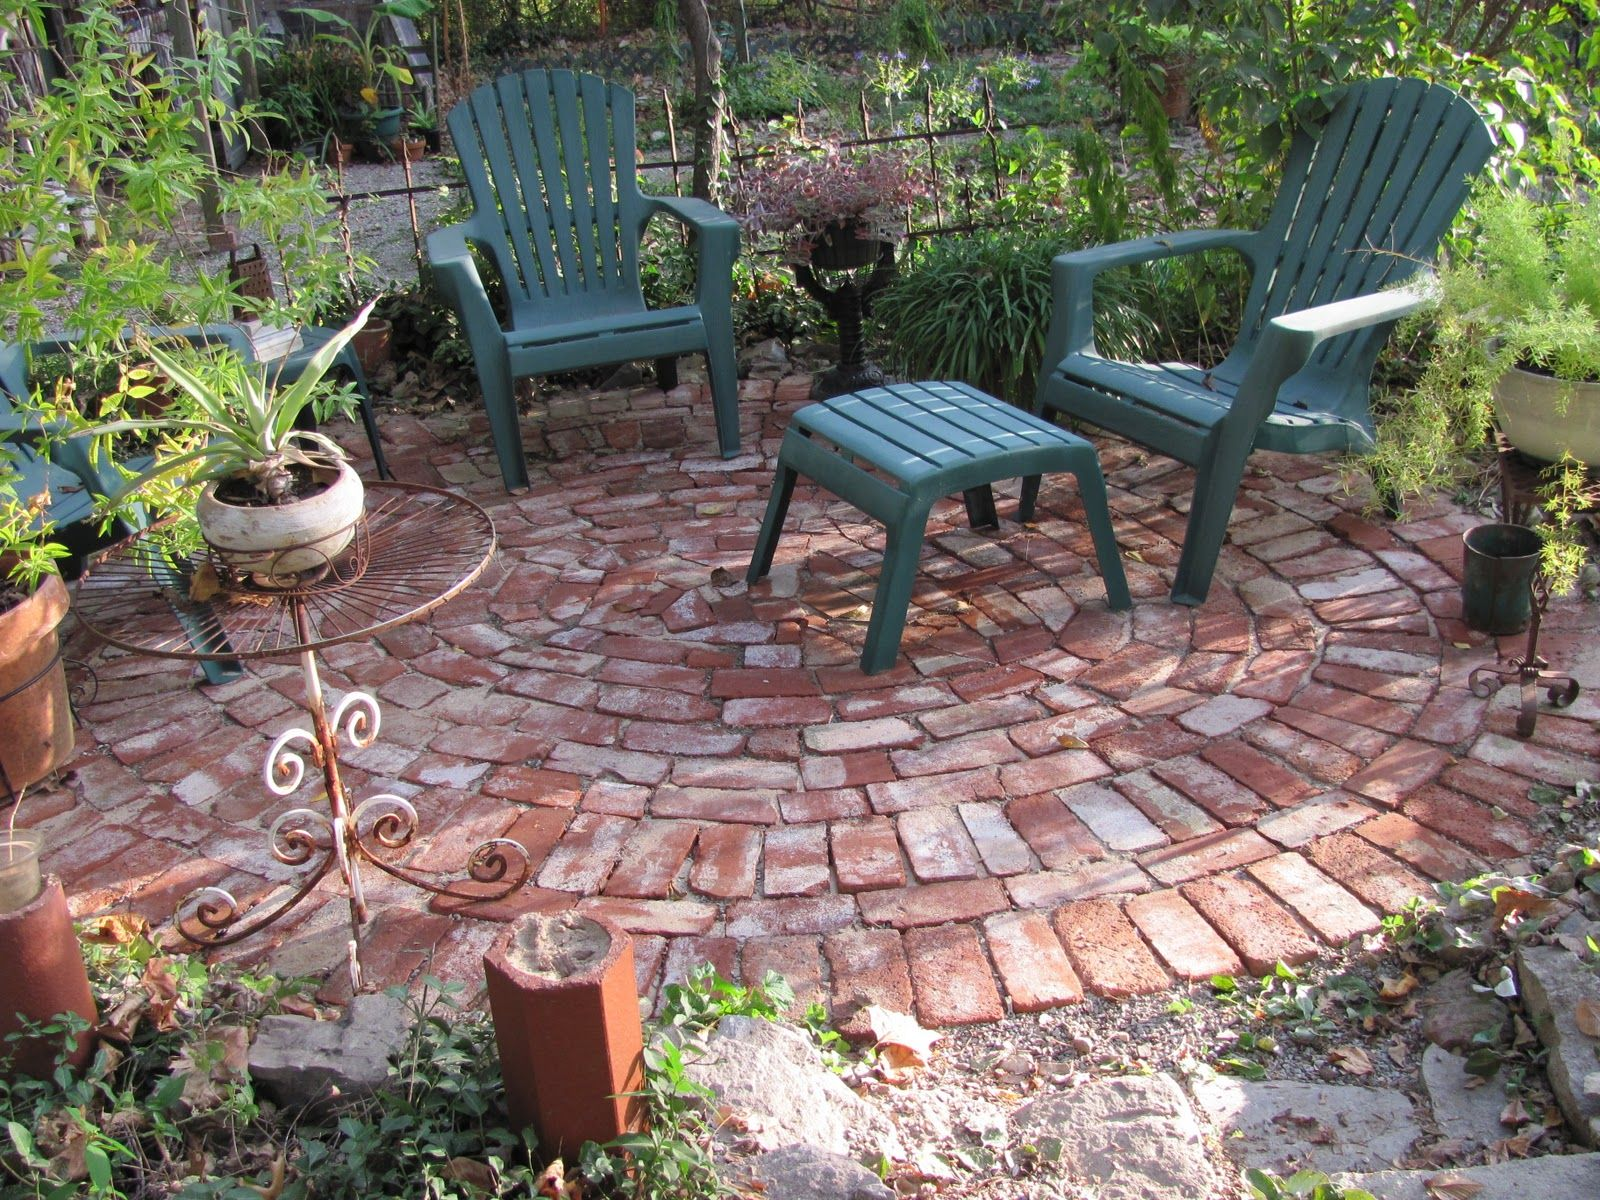 Backyard patio ideas flagstone - Backyard Patio Ideas Patio Ideas Enchanting Patterns For A Brick Patio With A Pair Of Plastic Reclining Lawn Chairs From Walmart Garden Products And